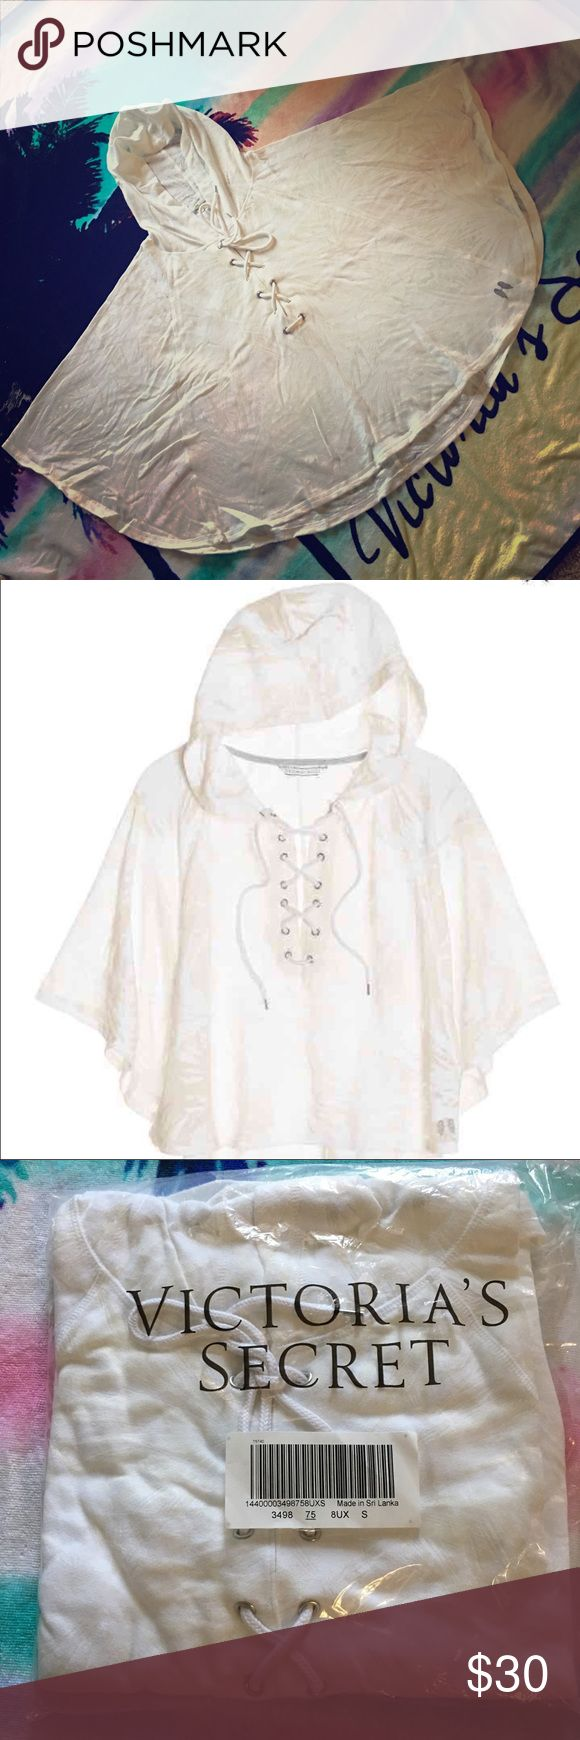 Today's Special! Victoria's Secret Ponchos New, never use and still on its original packaging!! Black color see through prints, soft, light and comfy cotton material hooded poncho with lace tie closure in the front, plus tiny angels wings detail on bottom. Perfect beach cover up. Original tag price was $69.95. Size S but fit M as well. Third photo shows a model wearing a ponchos with a different color. Color of the ponchos is White  Palm Burn Out. Victoria's Secret Sweaters Shrugs & Ponchos